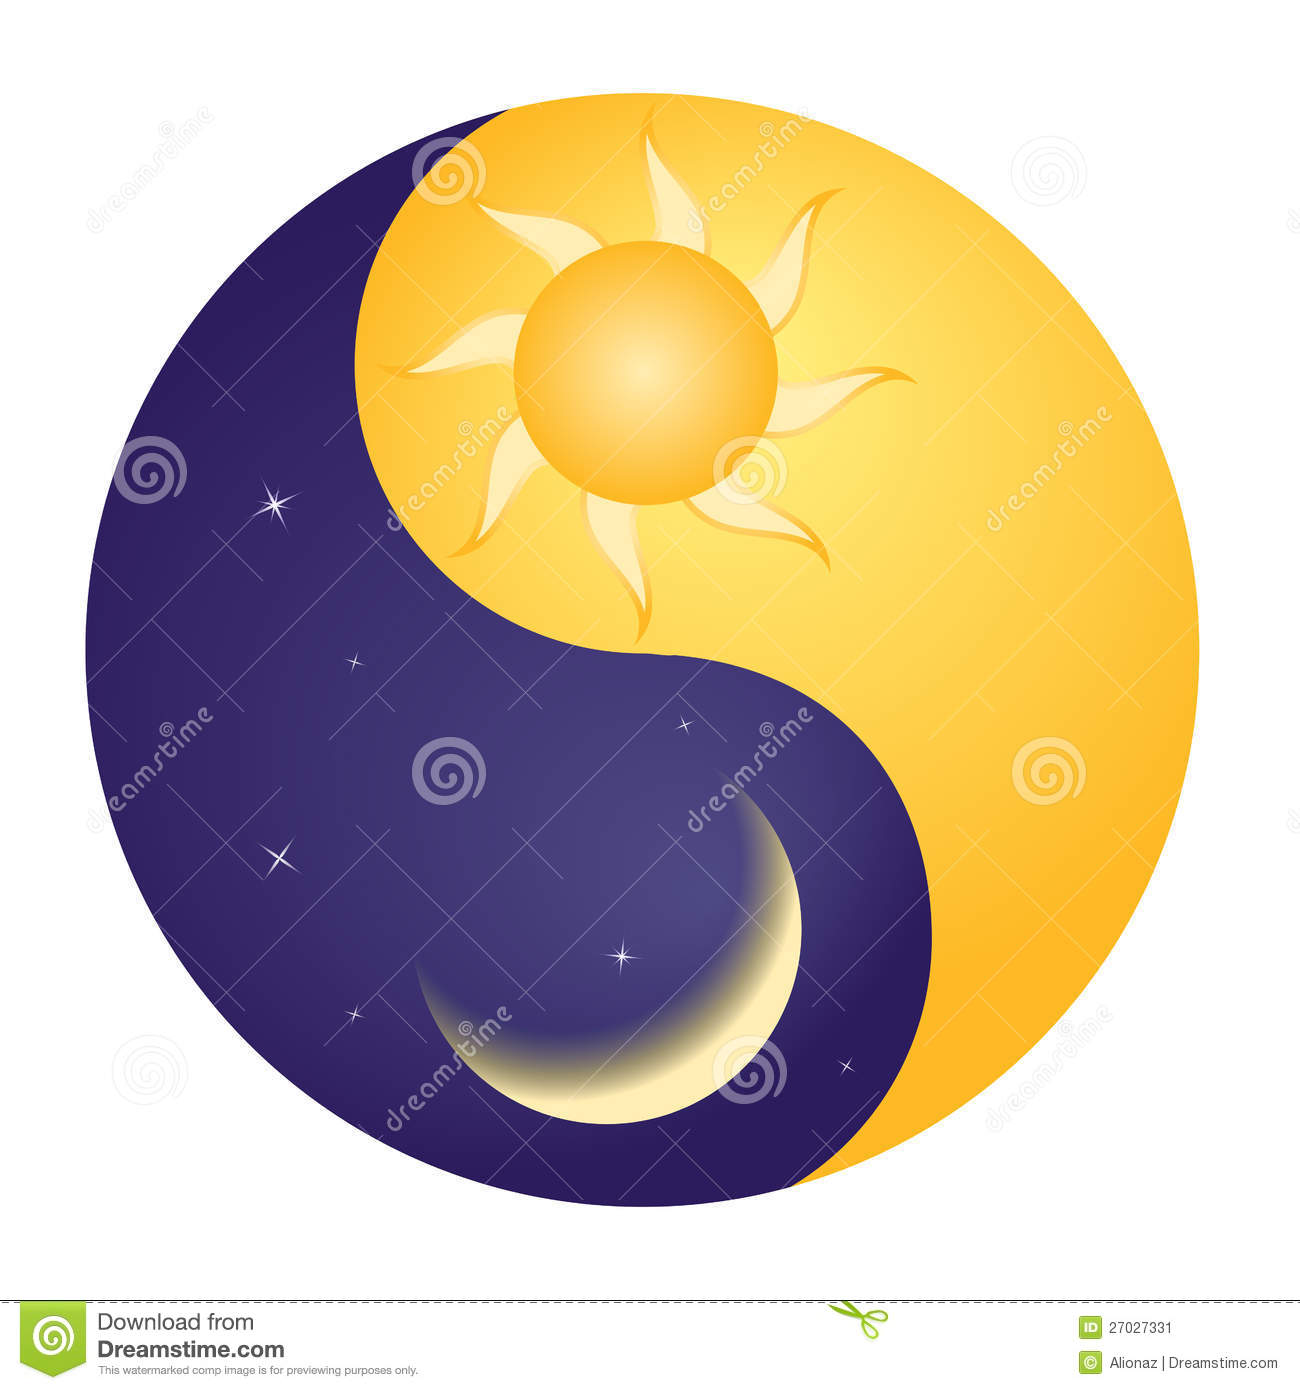 taoism and its relationship to yin and yang essay Teach your students about yin and yang with this lesson plan a video lesson explains taoism and its principles, then students focus on identifying.